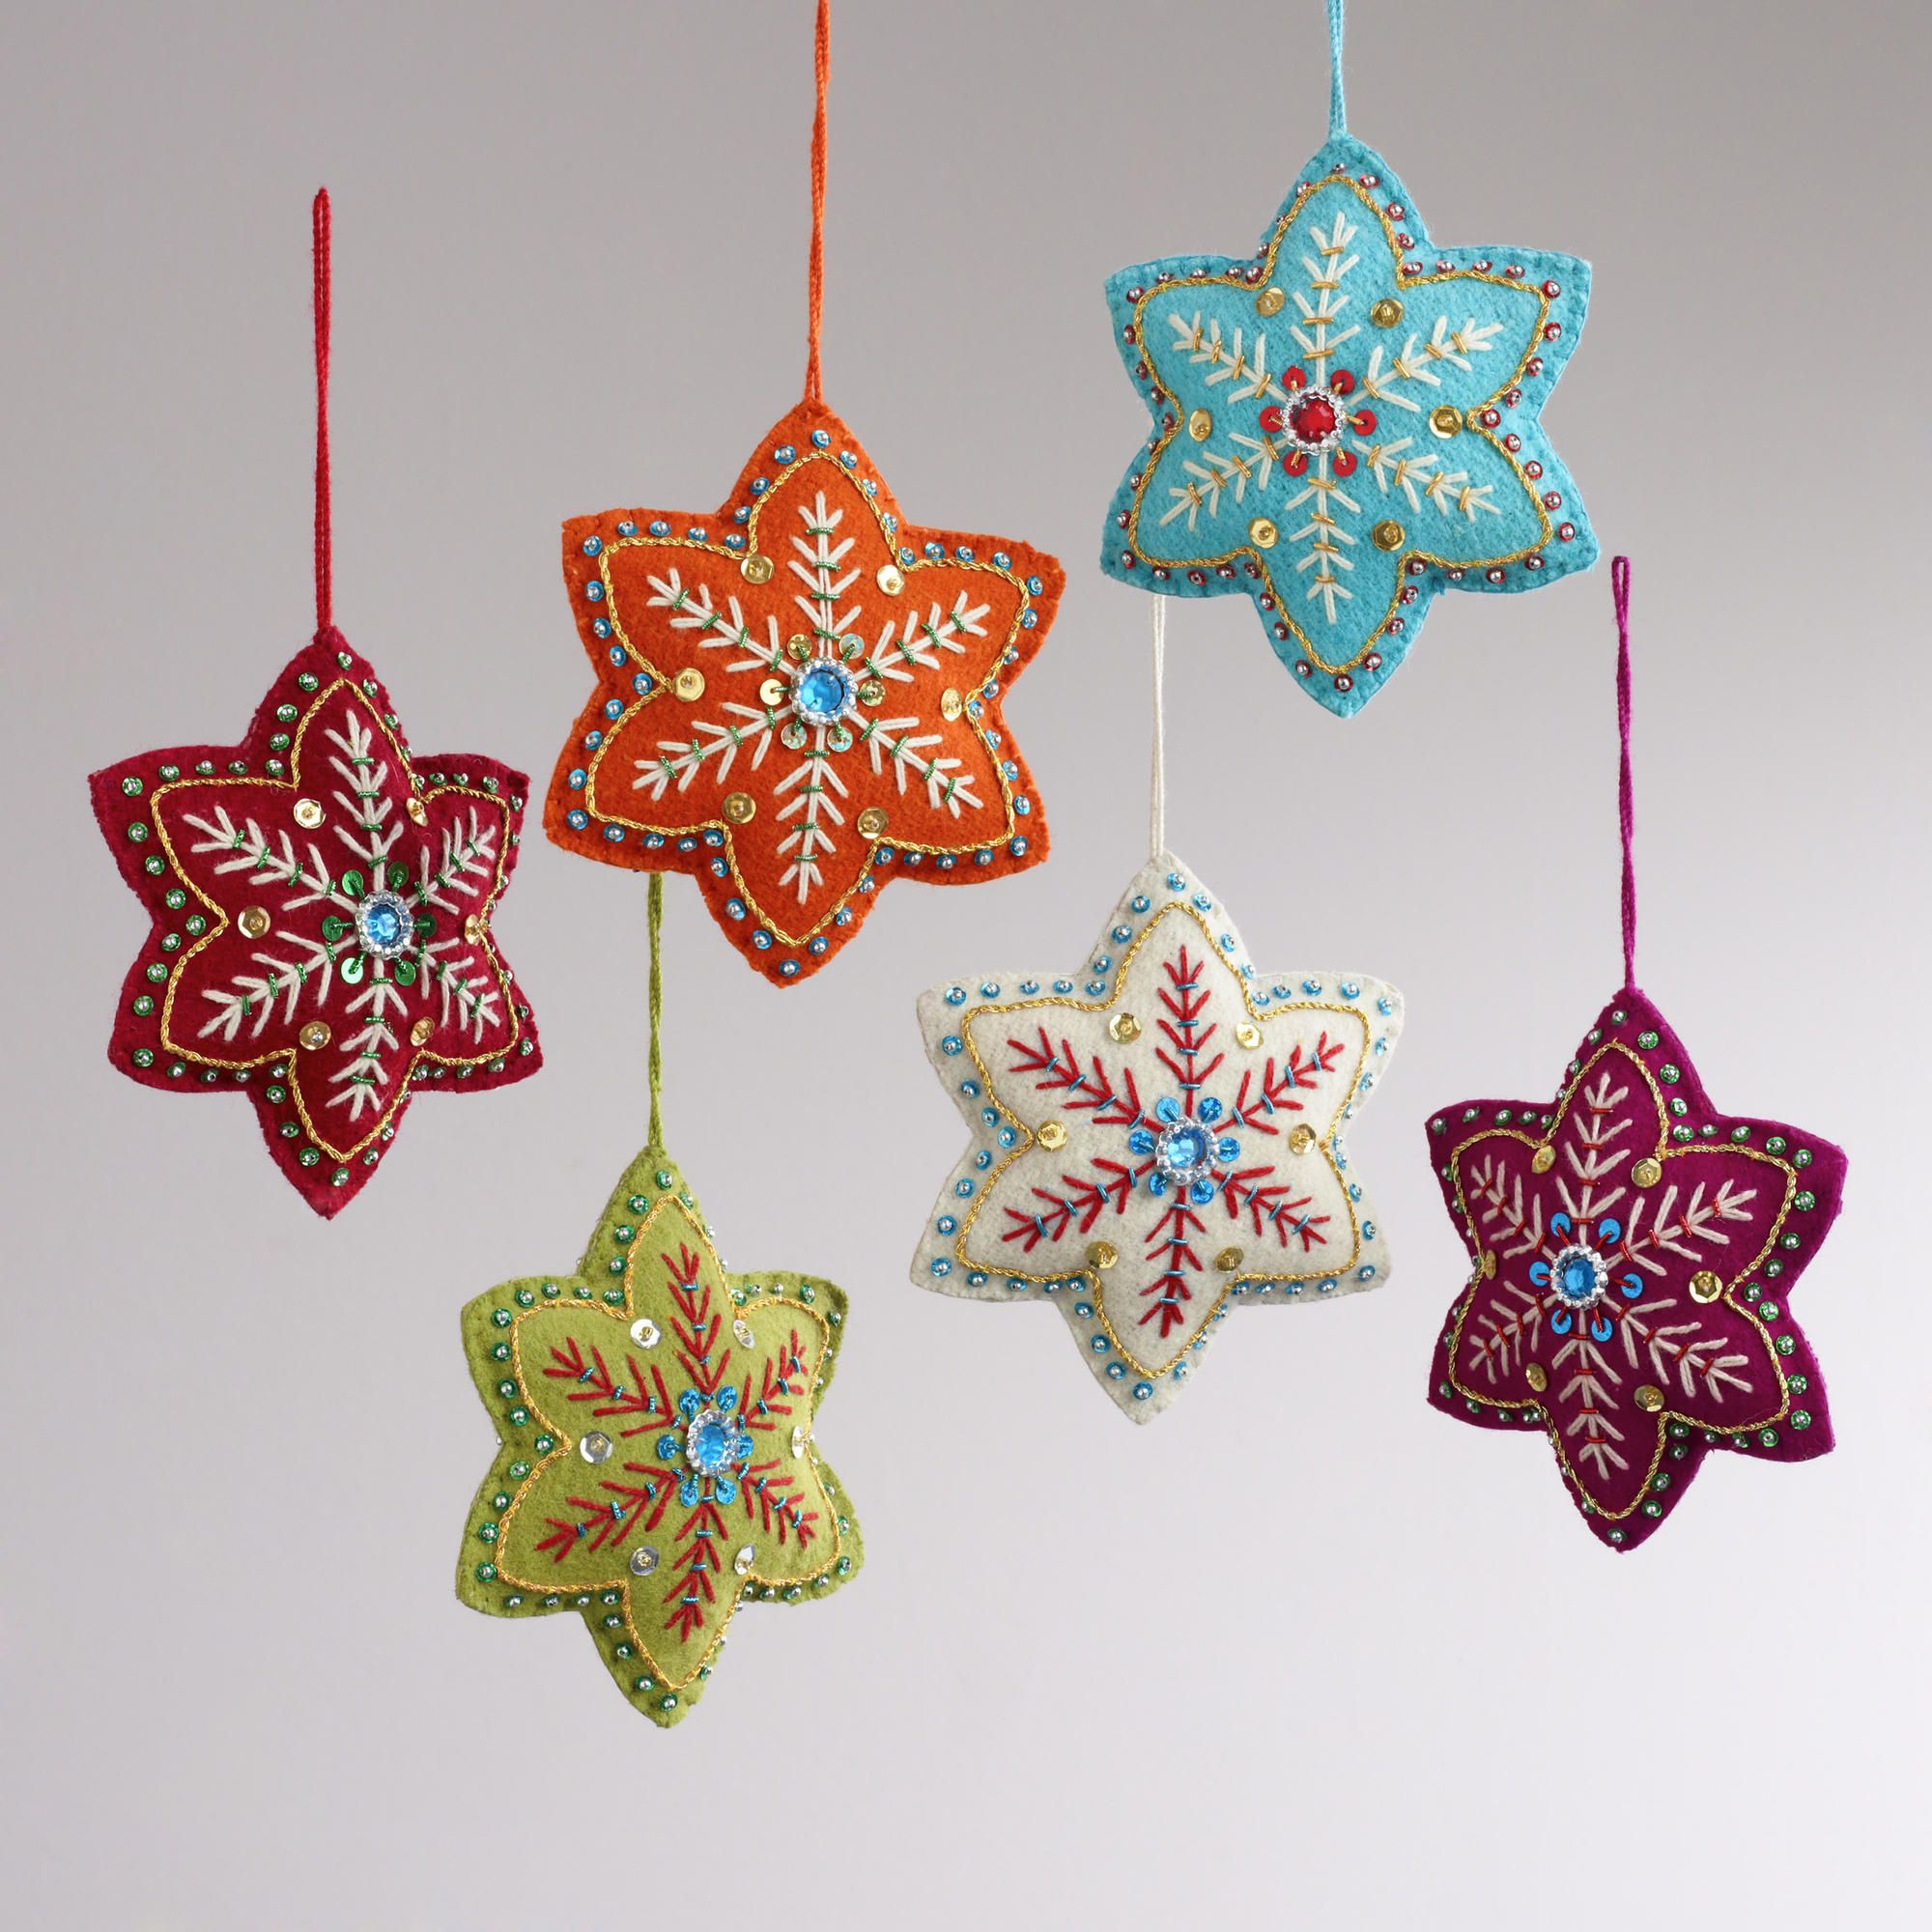 felt ornaments embroidered felt 6 pointed star ornaments set of 6 world market - Handmade Felt Christmas Decorations